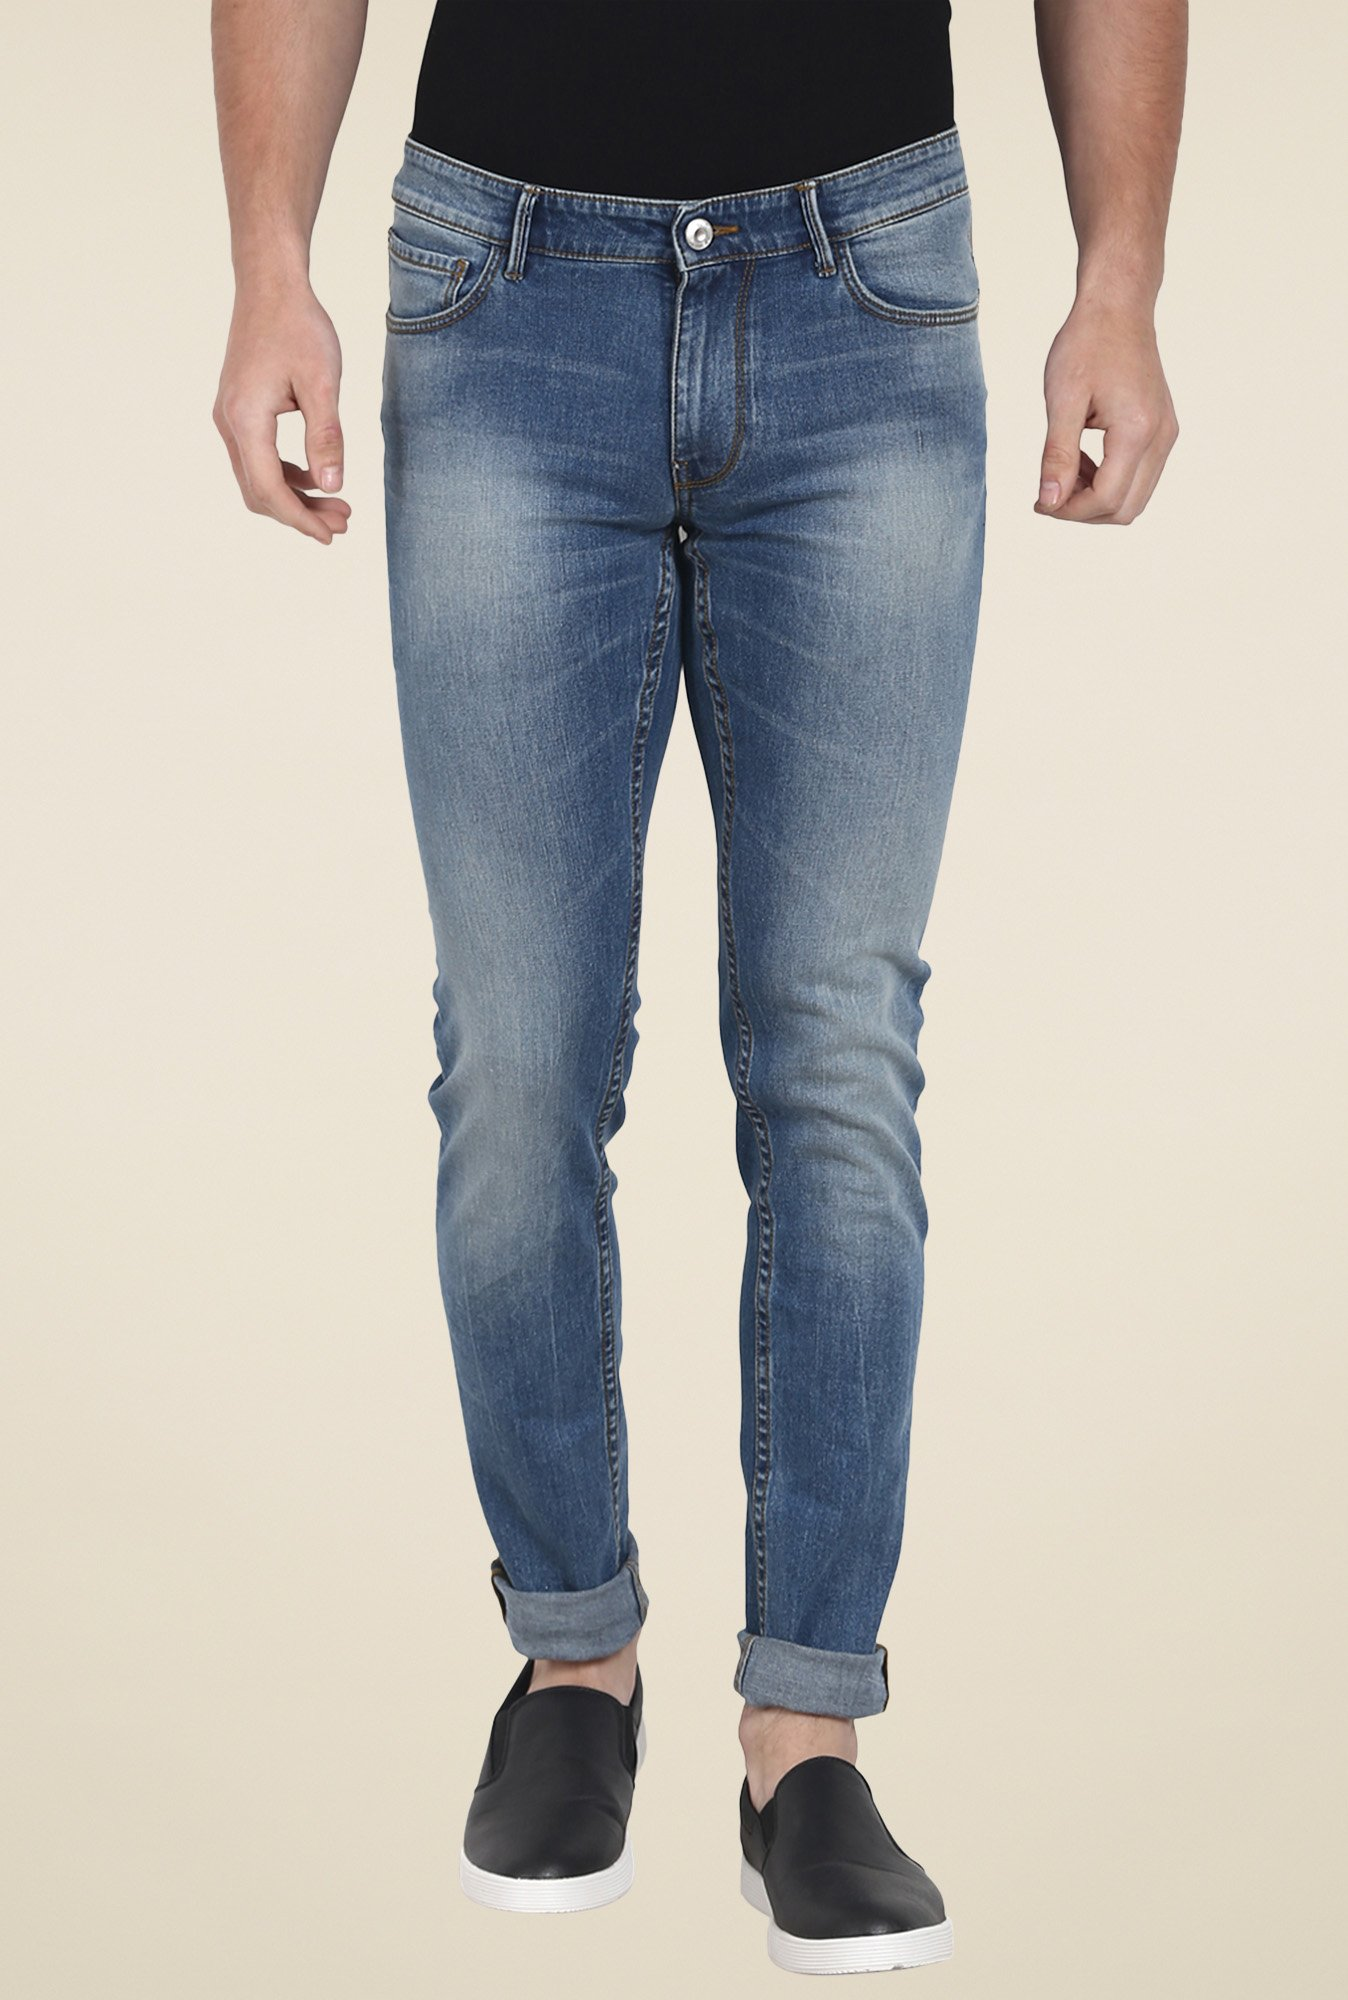 celio* Blue Slim Fit Jeans